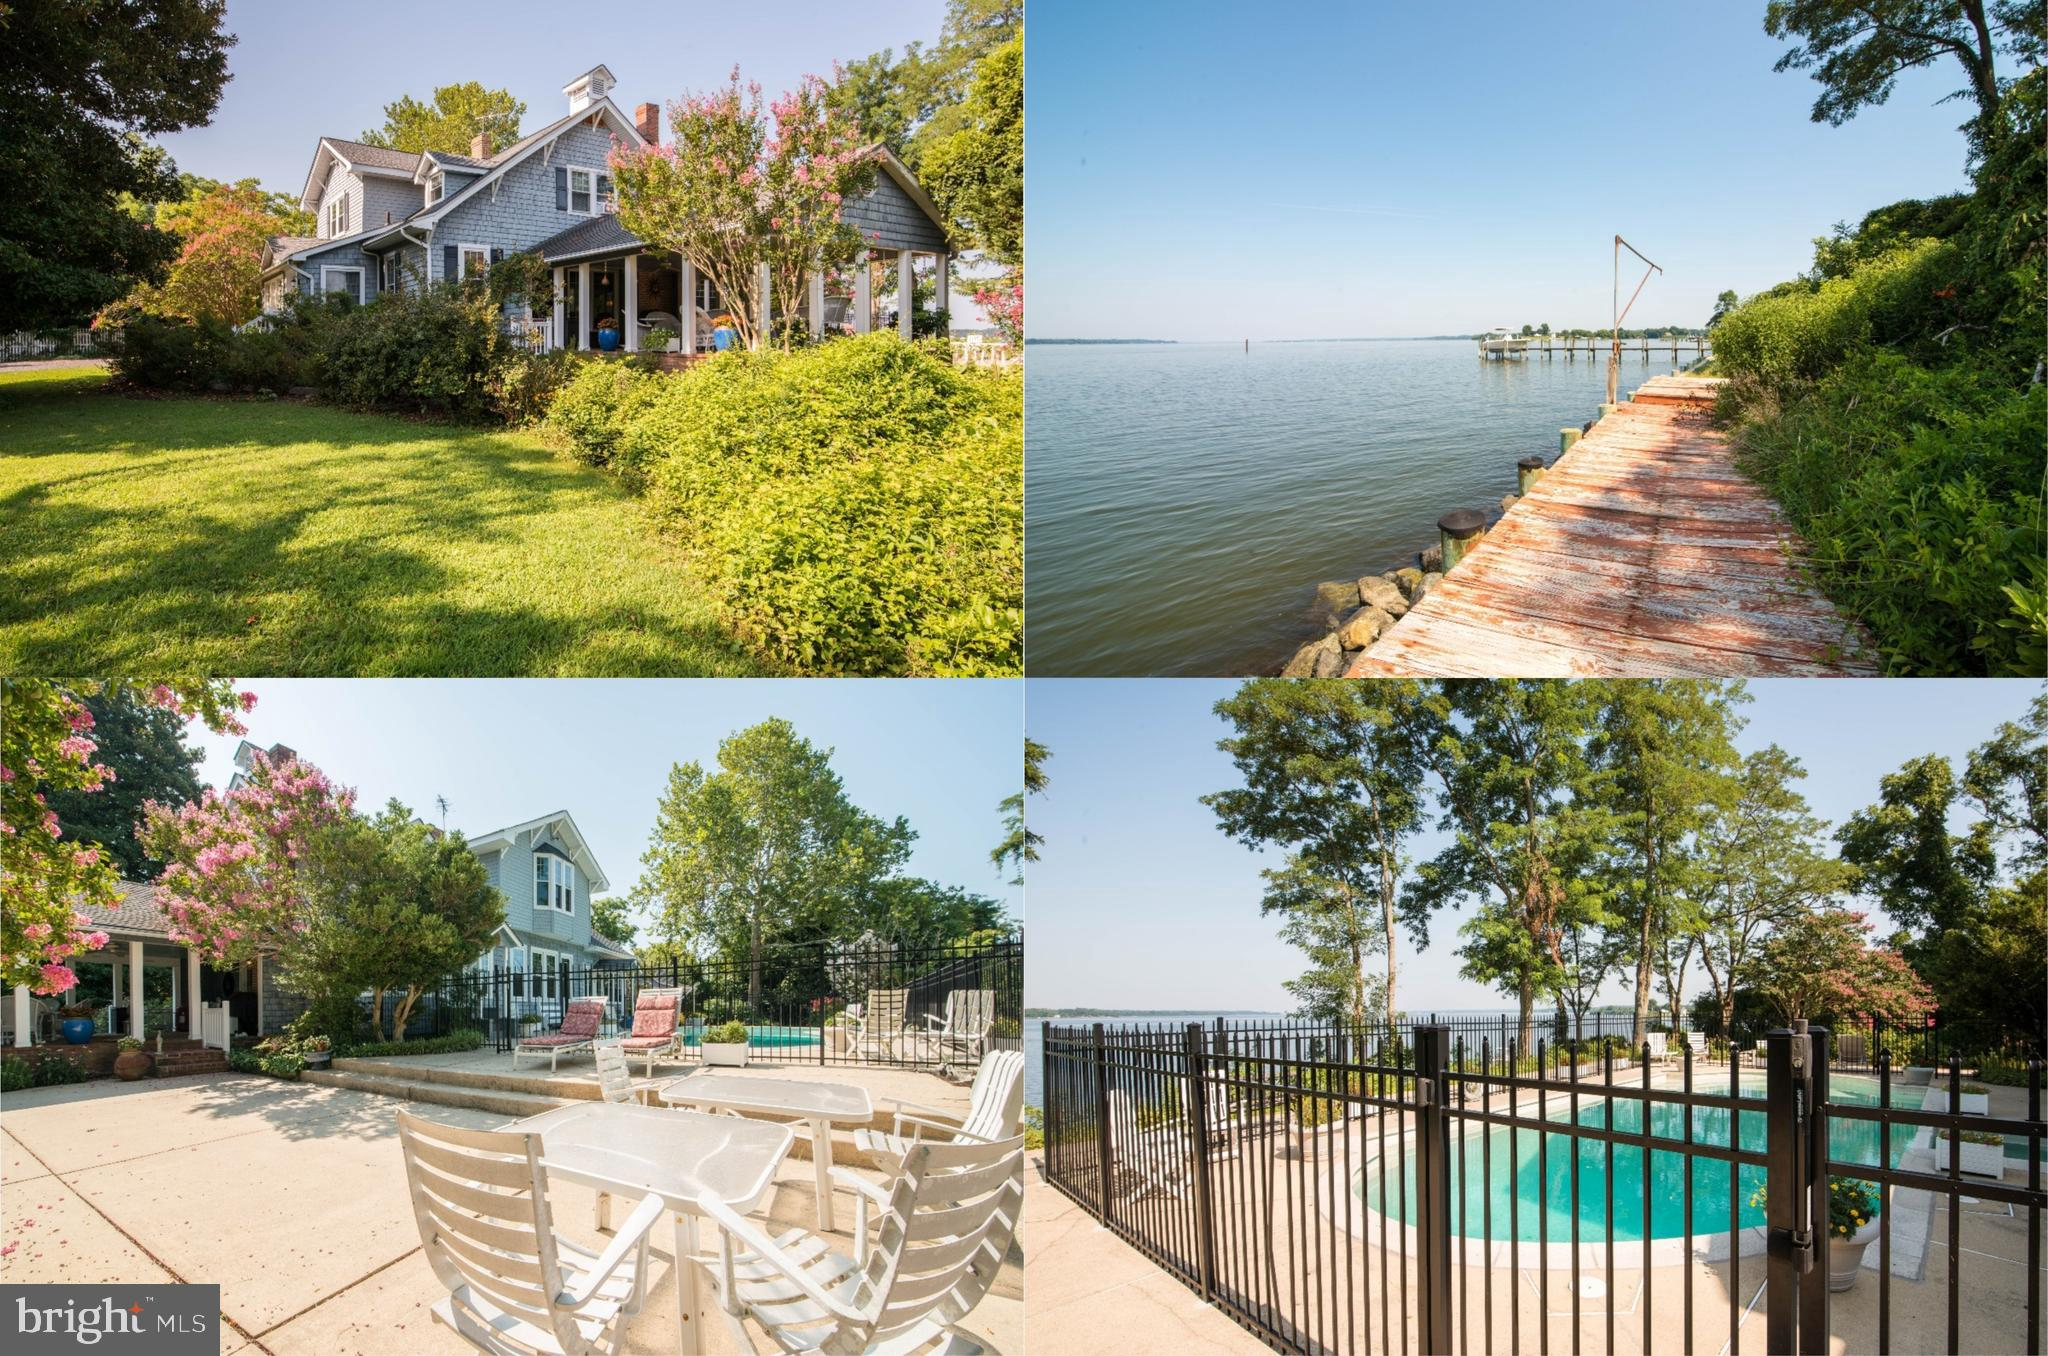 1437 GREGG DRIVE, LUSBY, MD 20657